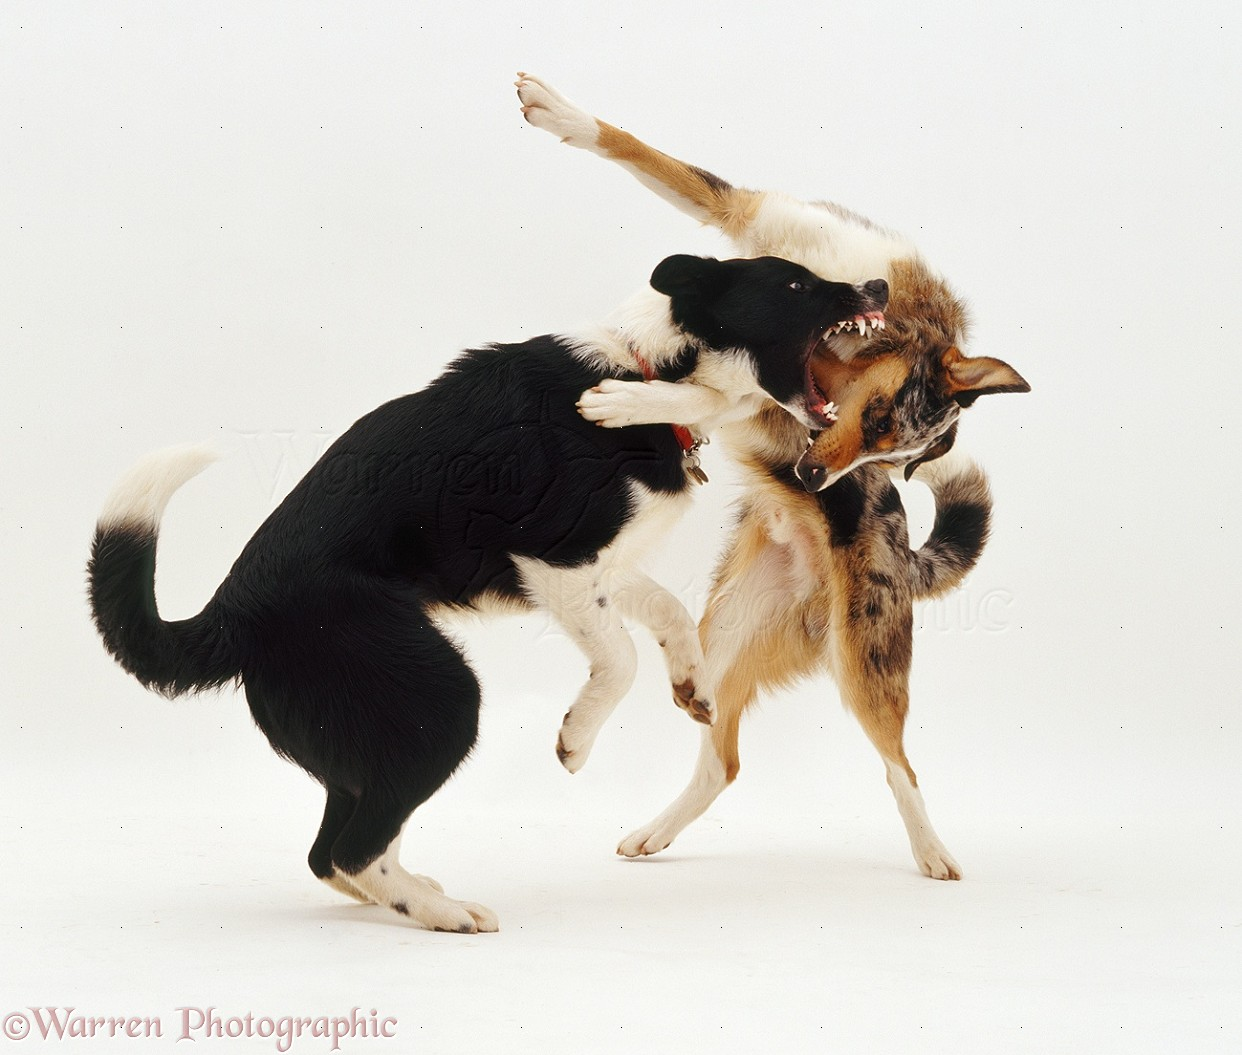 Why Dogs Fight At Home